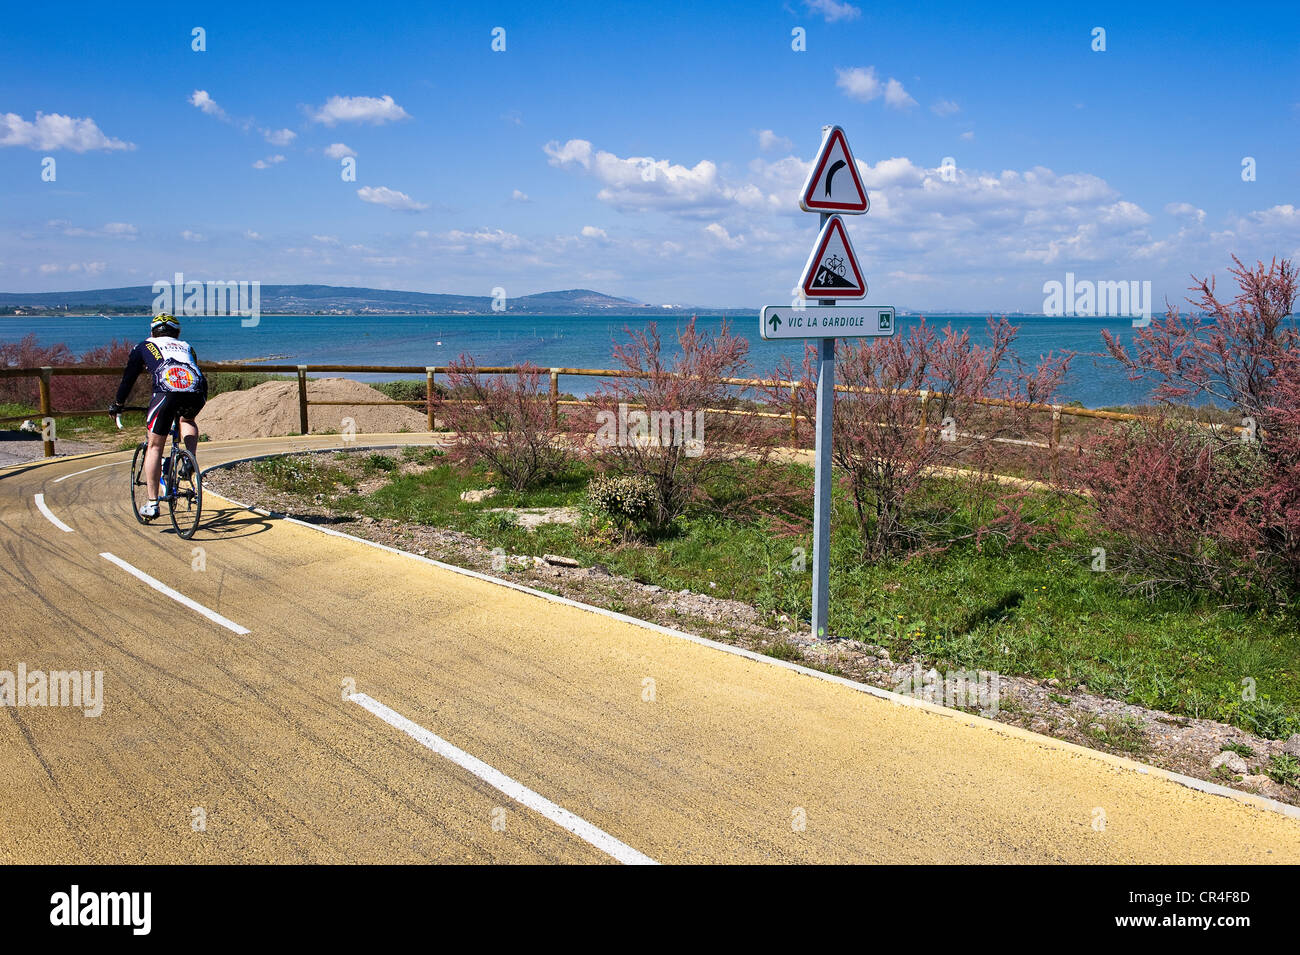 France, Herault, Vic la Gardiole, bicycle path above the canal linking the Rhone river to Sete - Stock Image